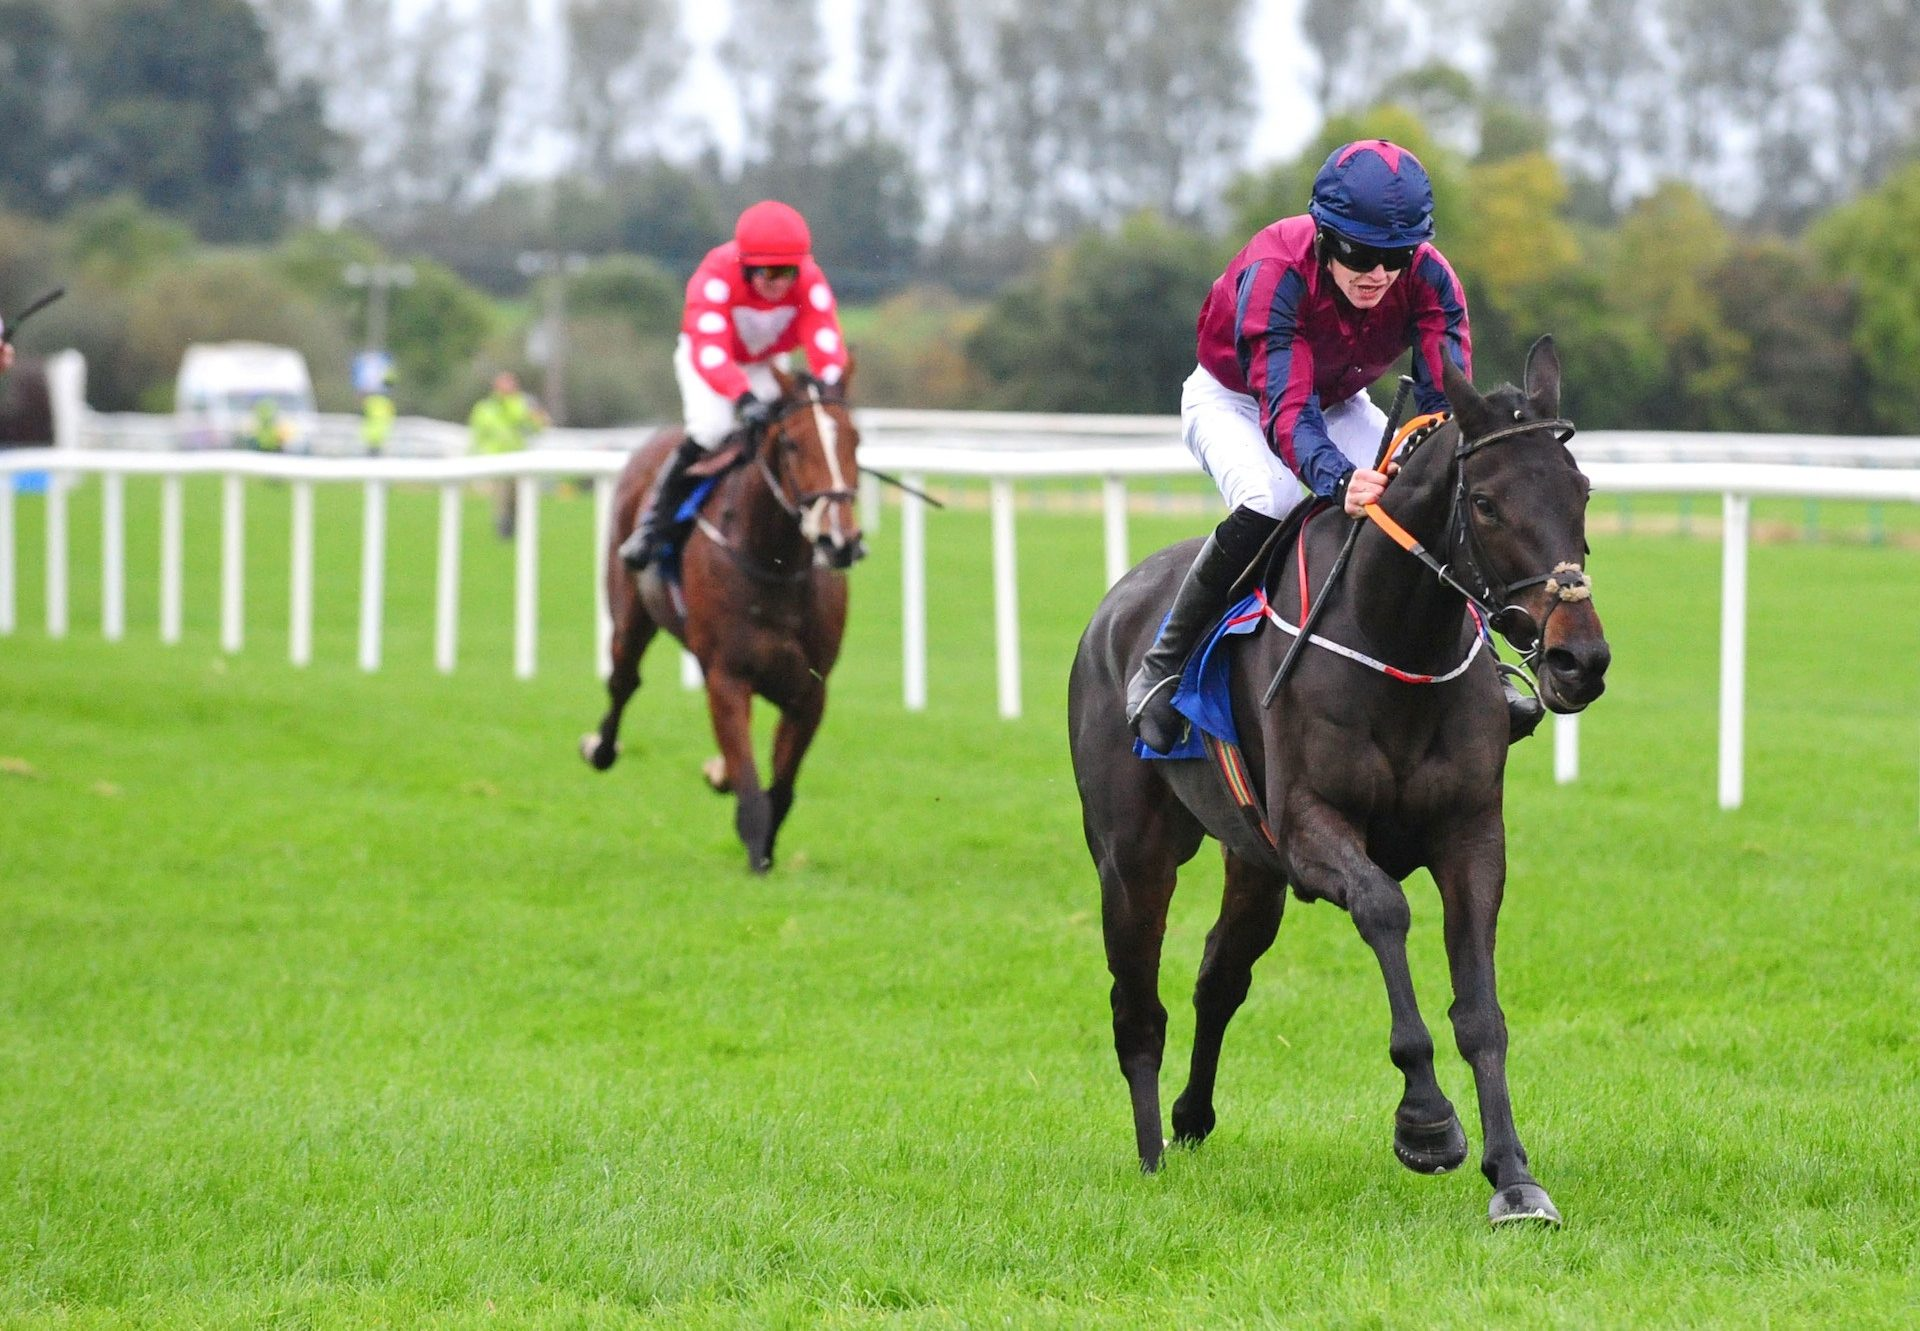 The Little Yank Becomes The Latest Winner By Westerner